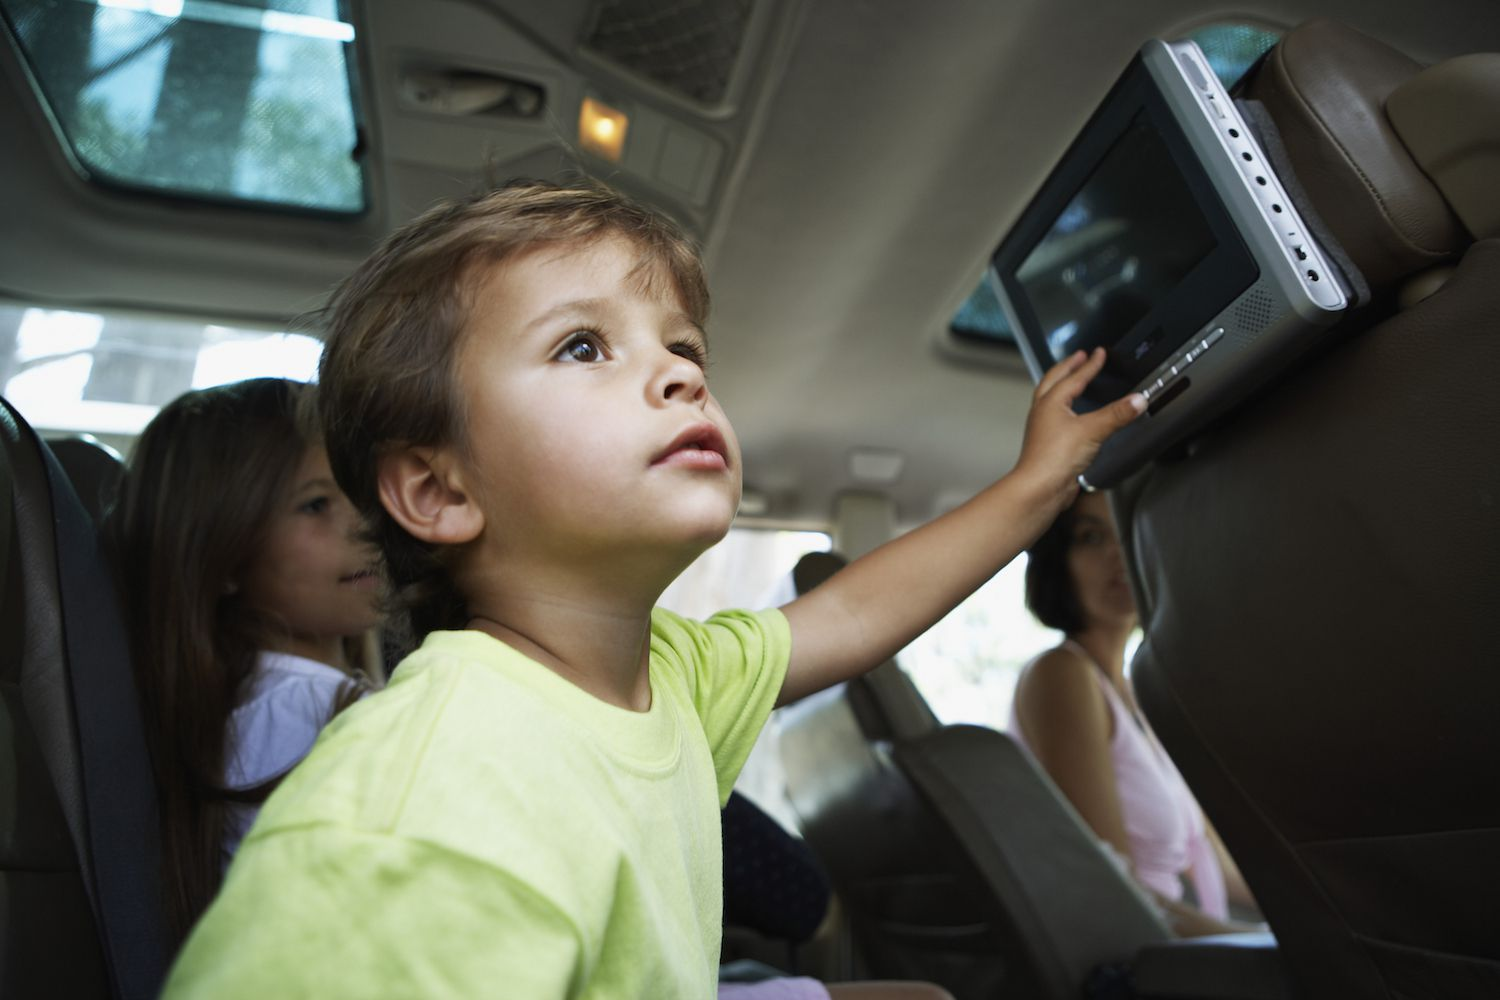 Children Watching Portable Television in MPV